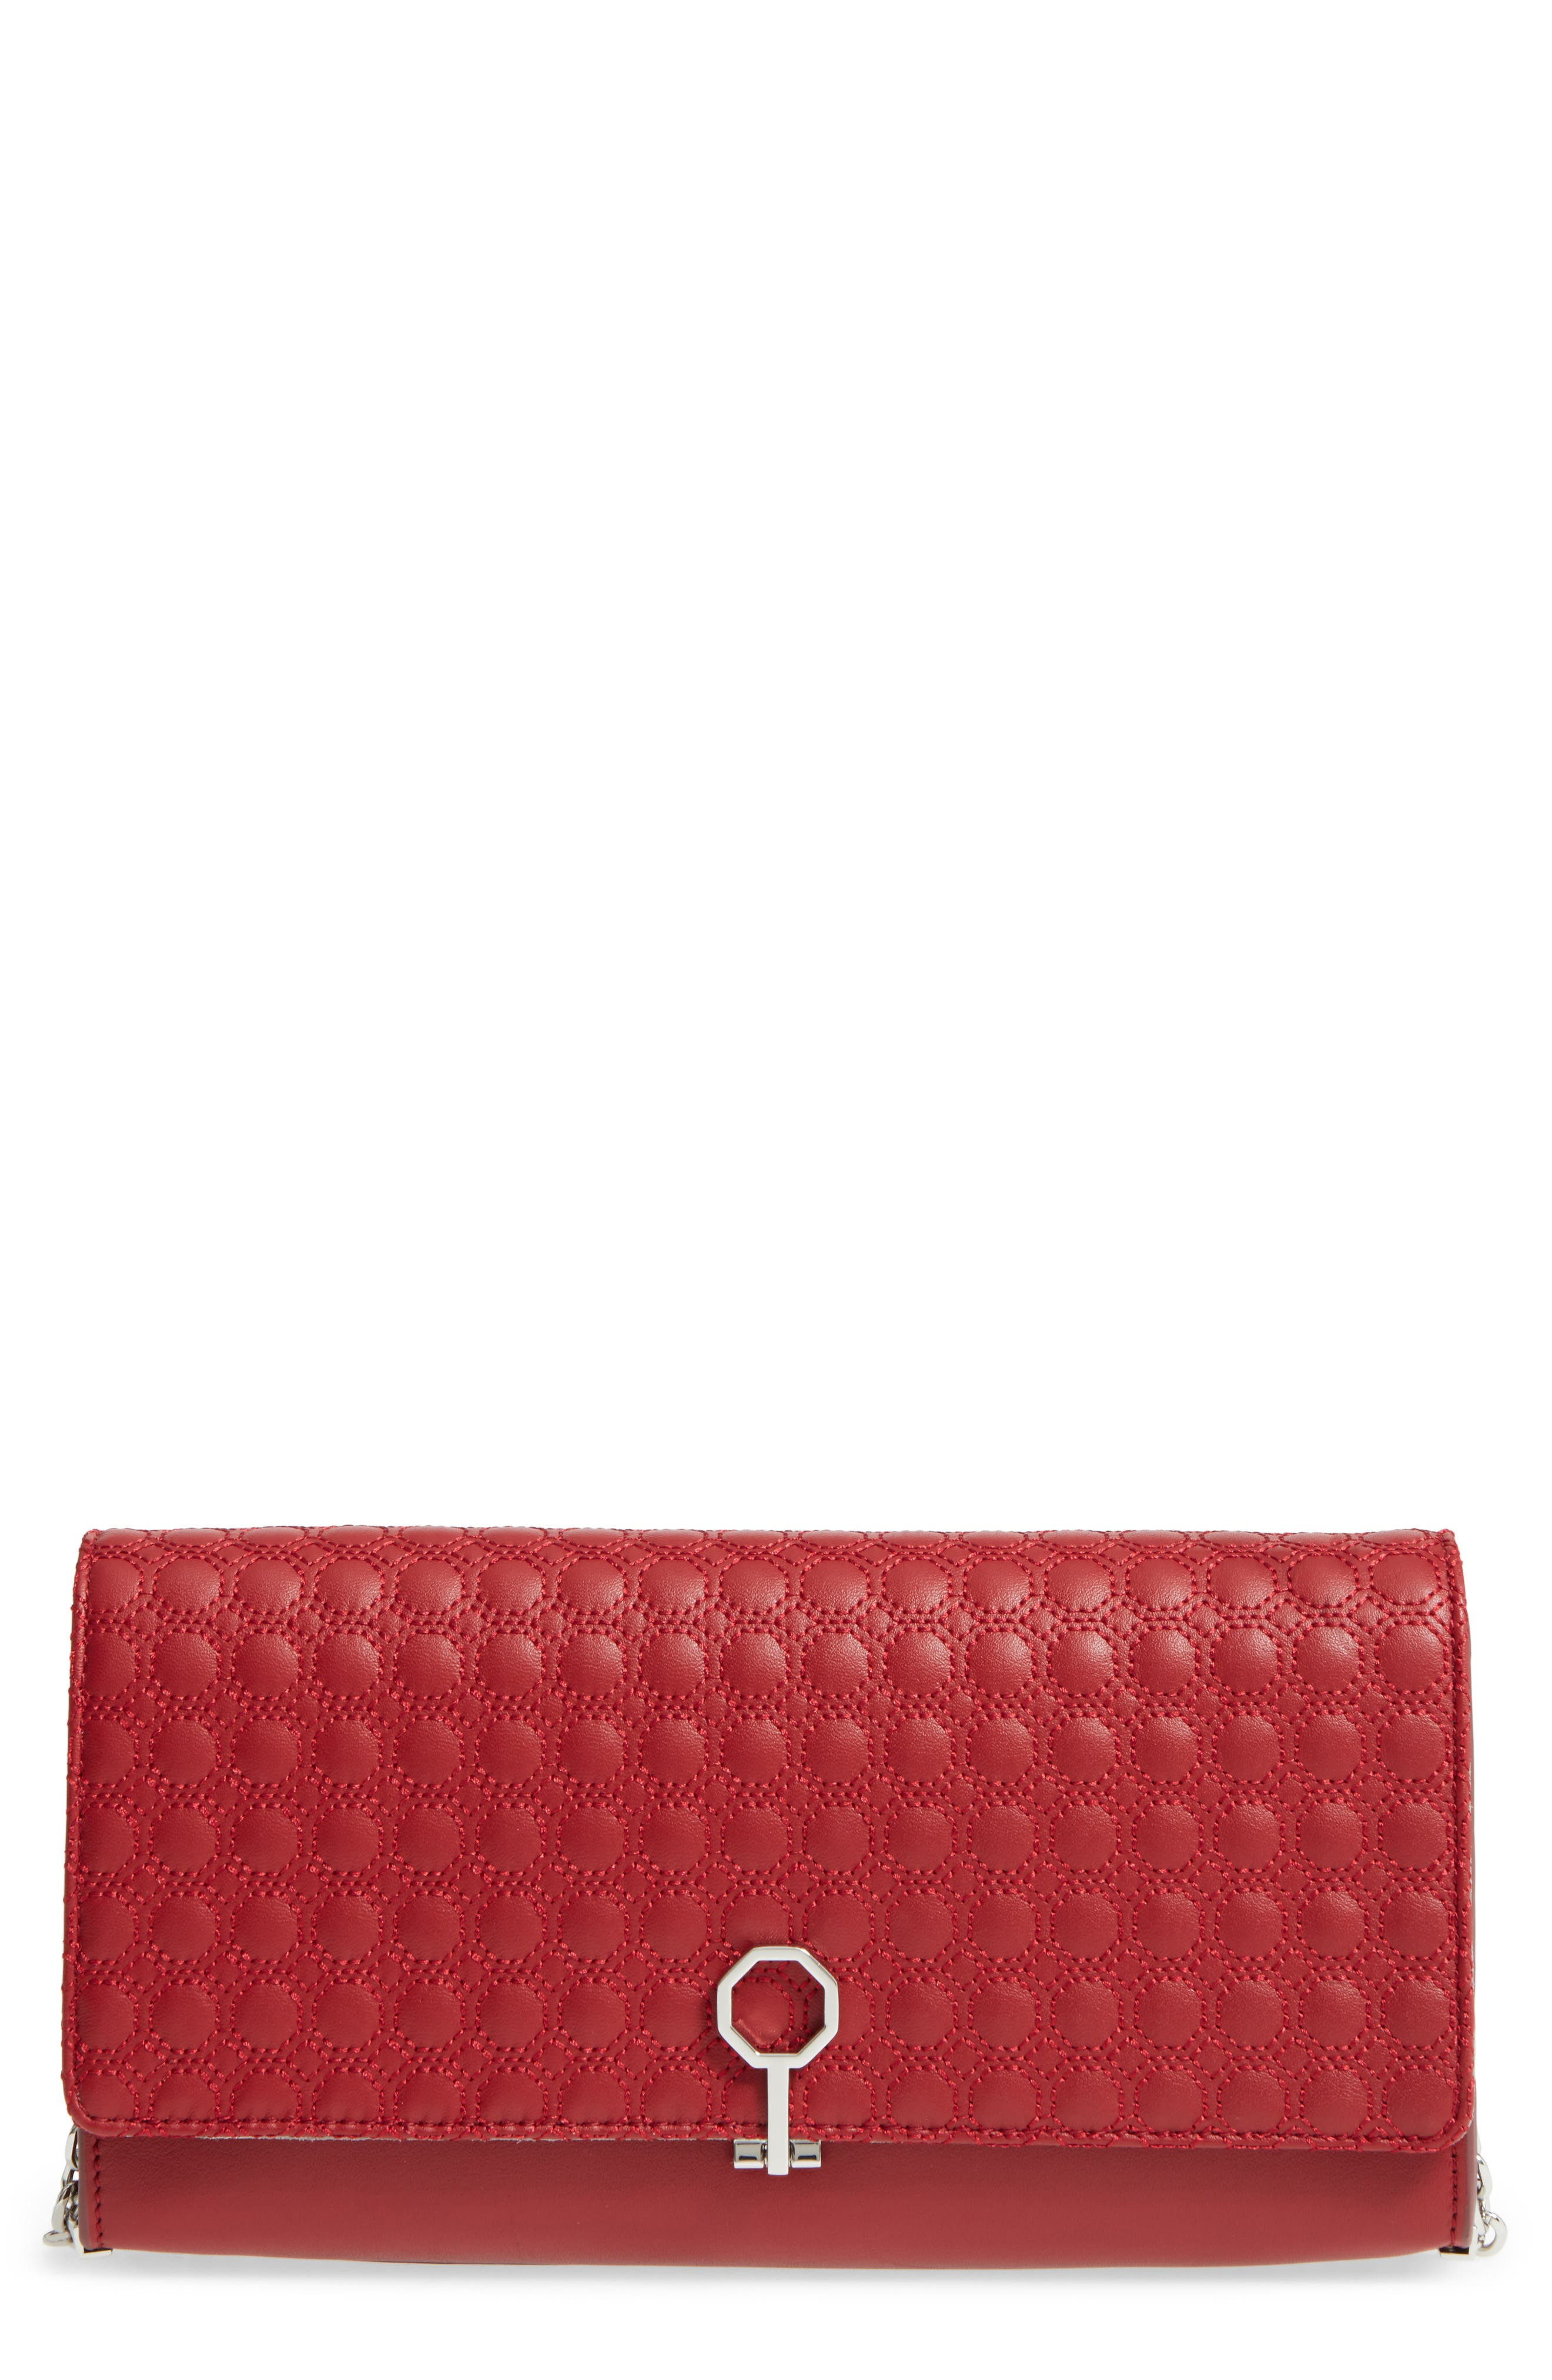 'Yvet' Leather Flap Clutch,                         Main,                         color, 600